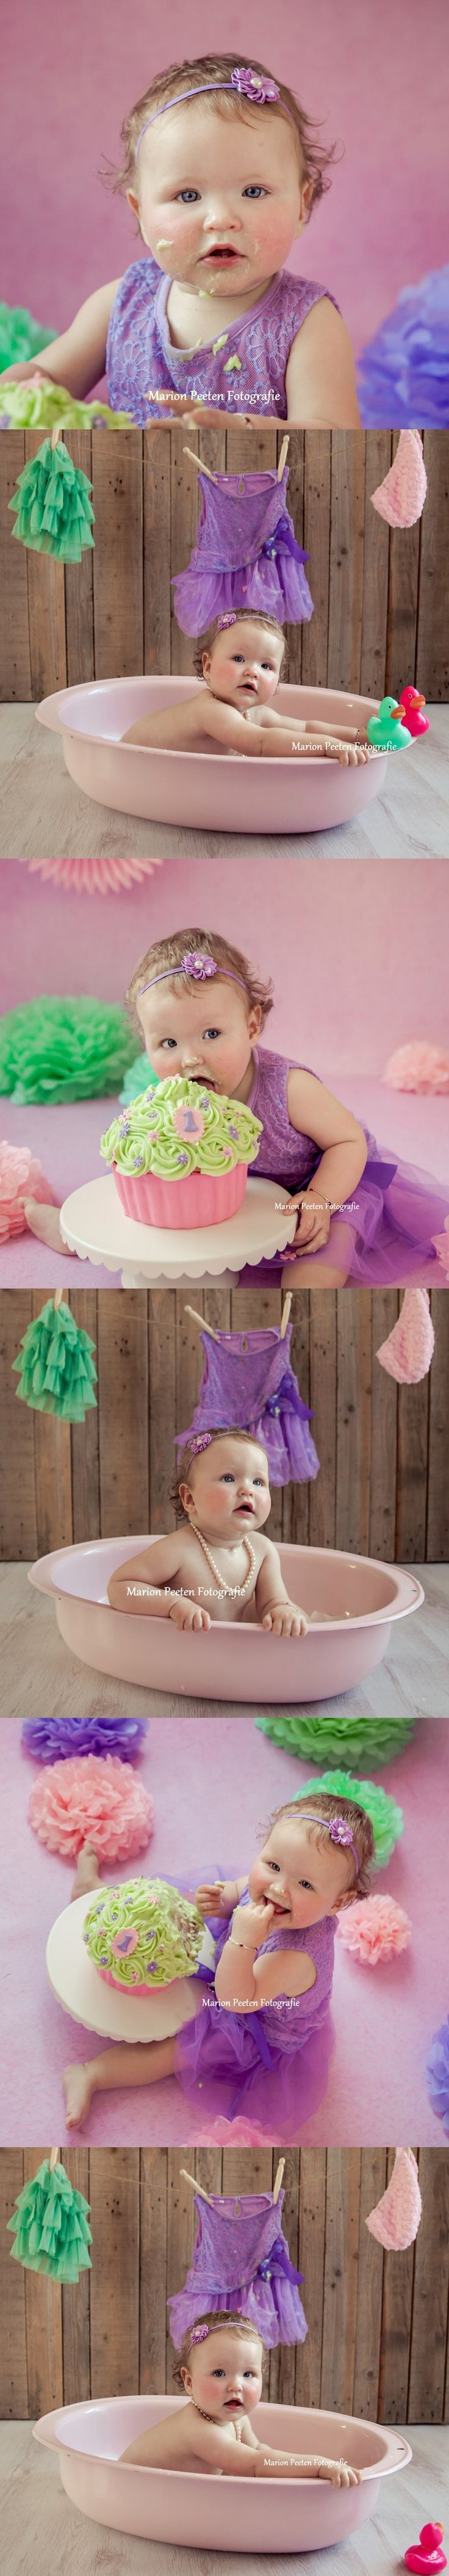 cake smash fotoshoot#taart fotoshoot#verjaardag fotoshoot#cake smash shoot# birthday shoot# one year old photoshoot#marion peeten fotografie#birthday girl# bathtub photoshoot#